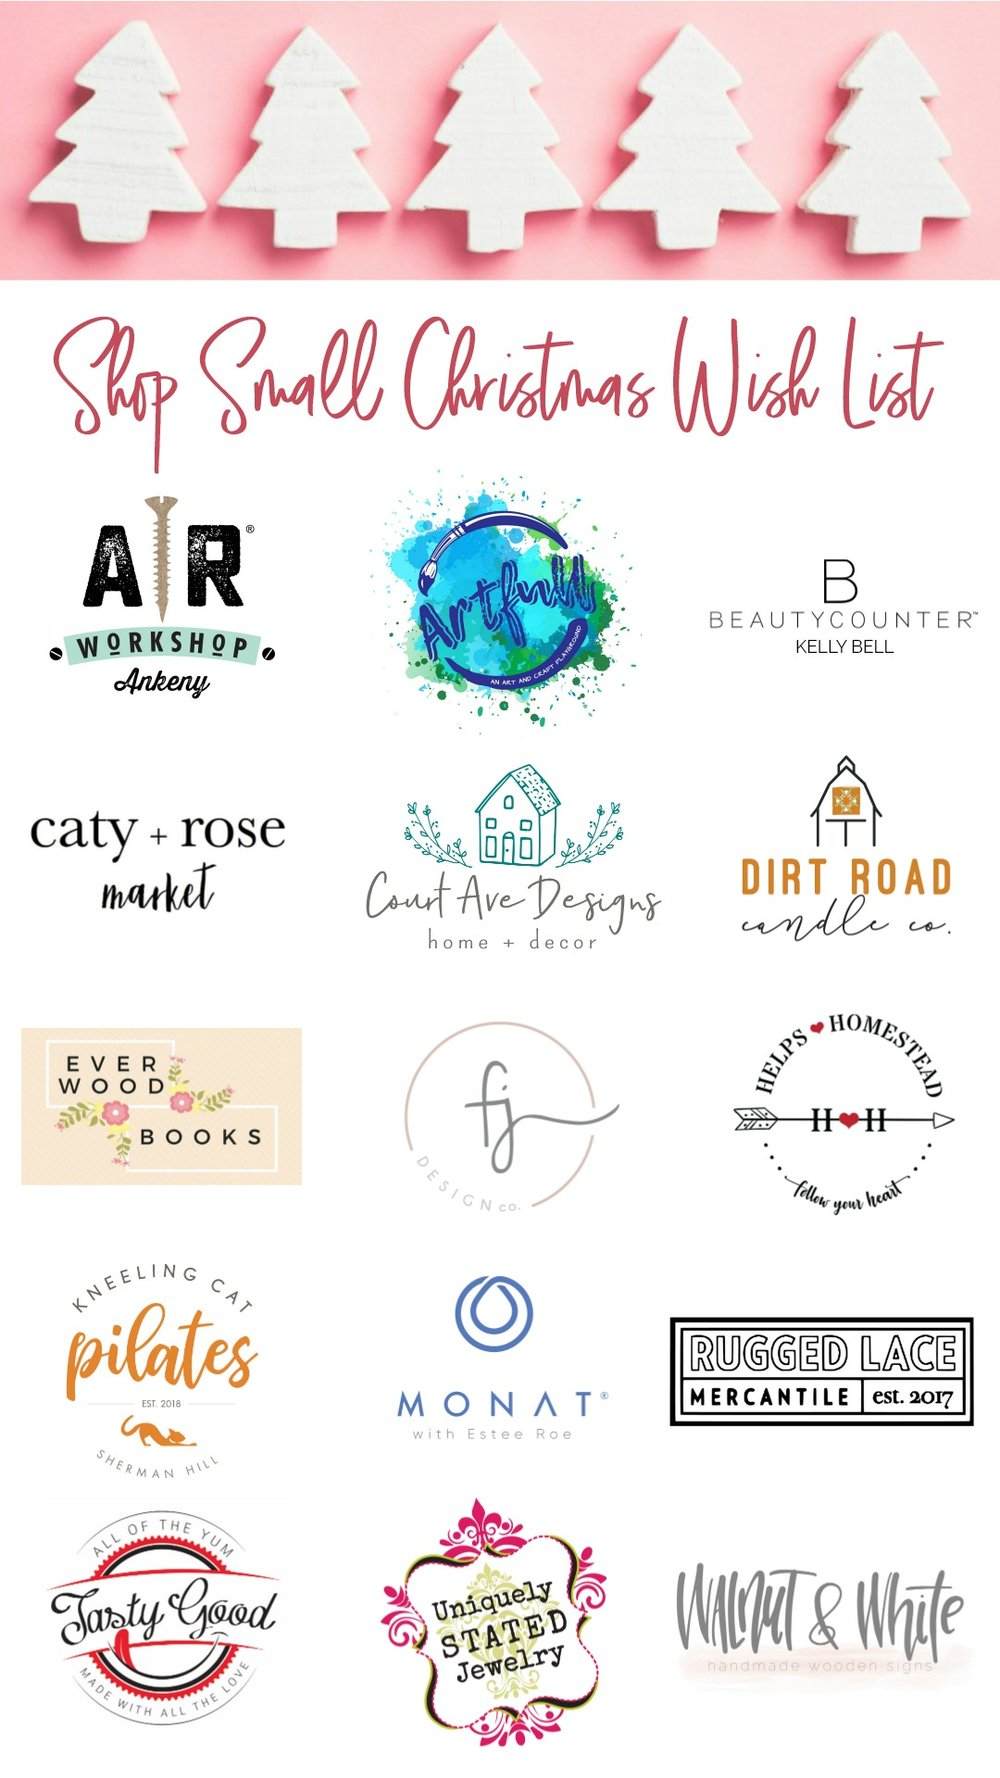 I'm sharing some amazing small businesses to knock out your Christmas shopping over at hprallandco.com